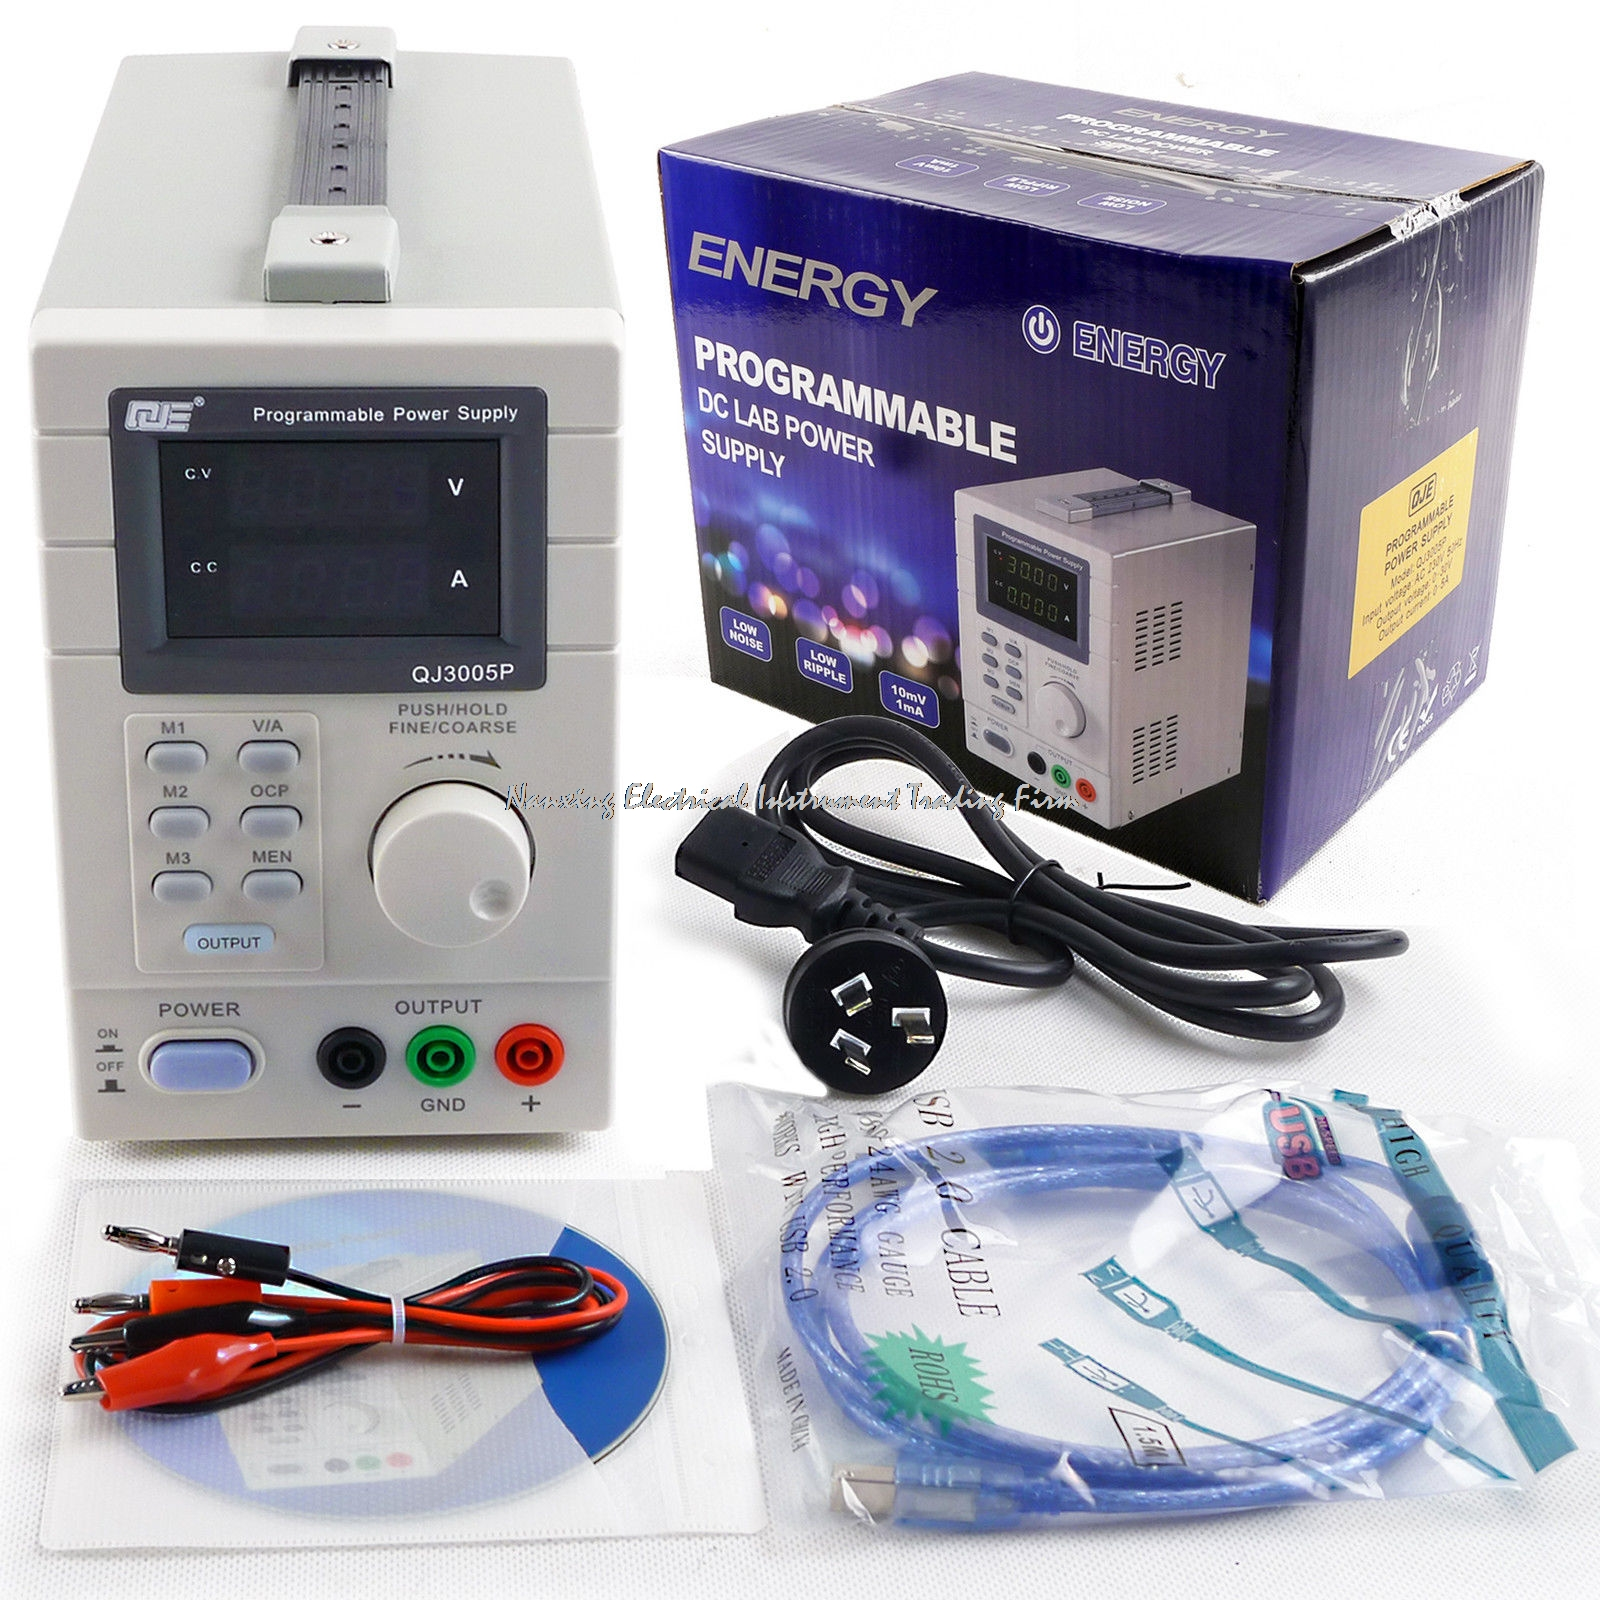 fast arrival QJE QJ3005P USB PROGRAMMABLE DC LAB POWER SUPPLY Single phase 0-30V/5A 2.0 LCD Screen  resolution 10mV 1mA fast arrival hspy30v 10a dc programmable power supply output of 0 30v 0 10a adjustable rs232 port